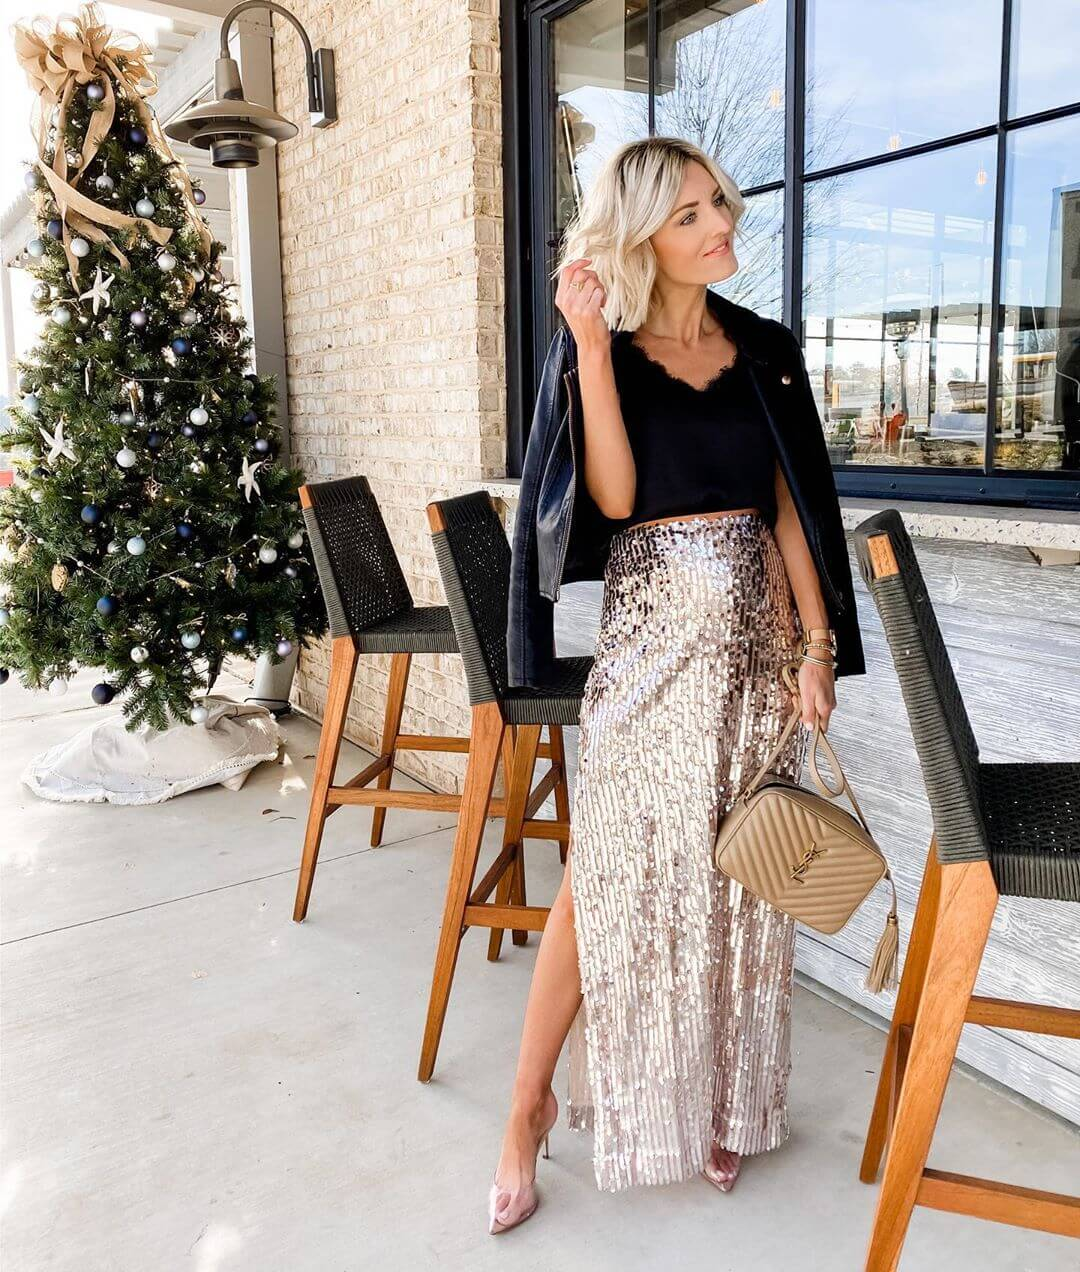 Sequin skirts for a casual day out fun with sequin